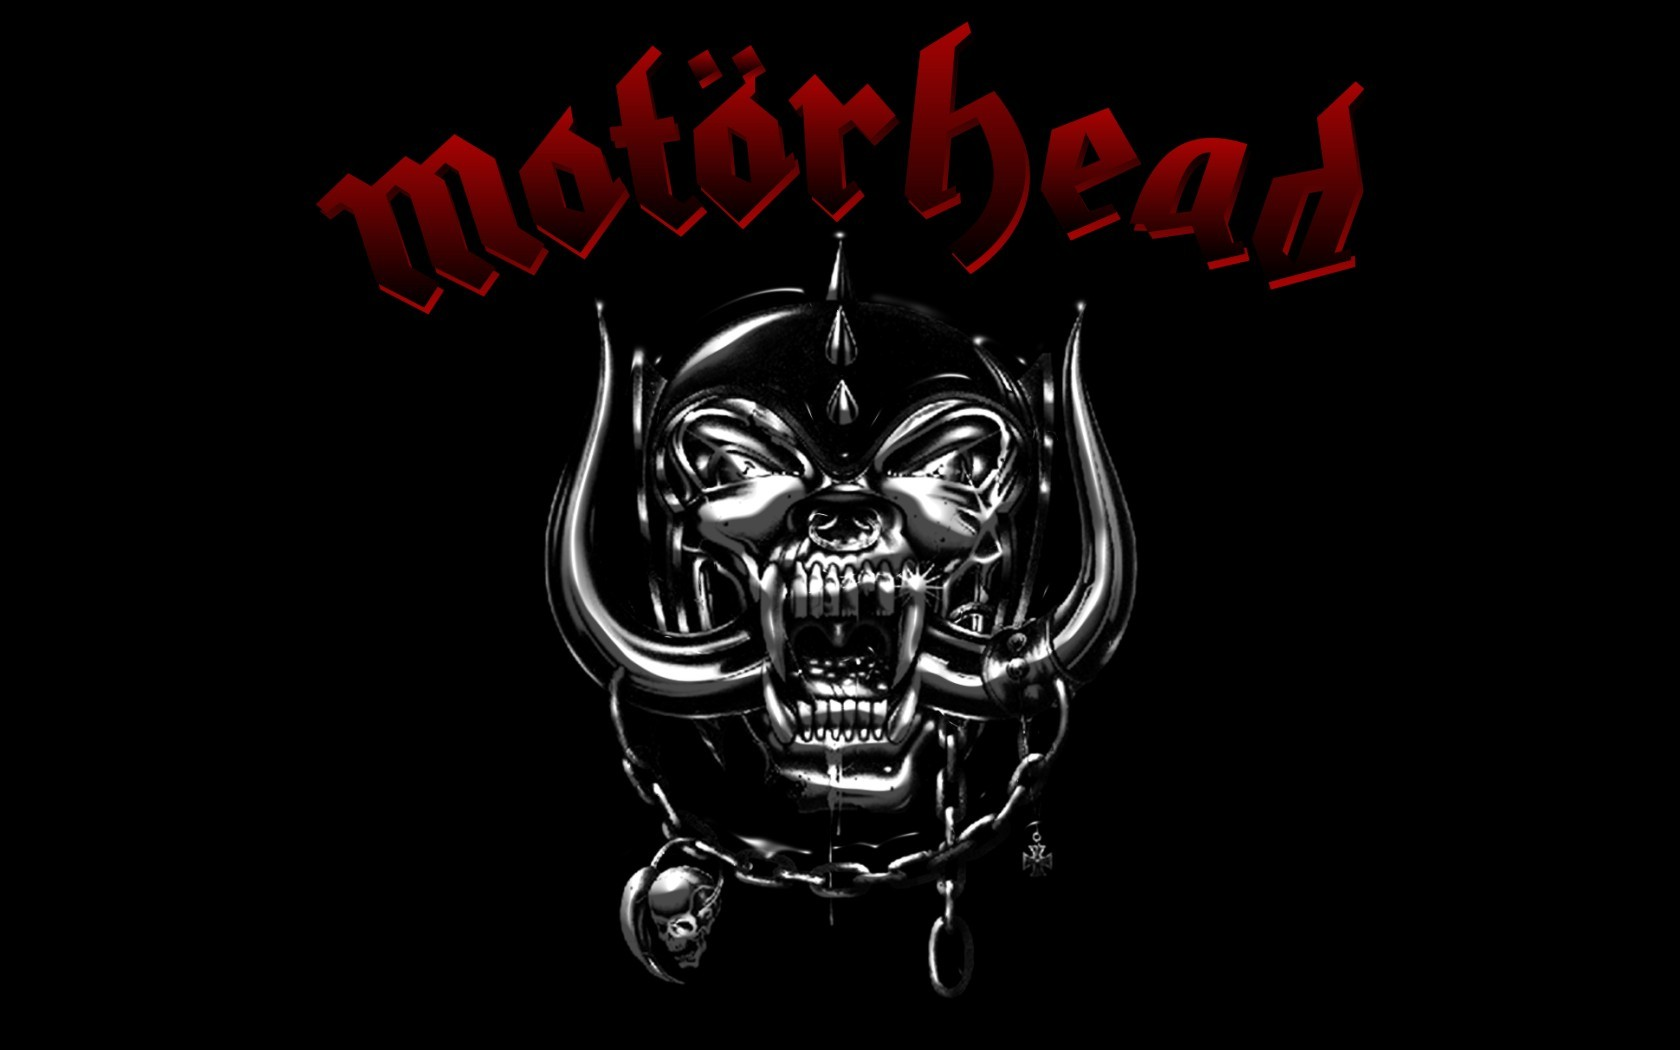 Motorhead Heavy Metal Hard Rock Dark Wallpaper 1680x1050